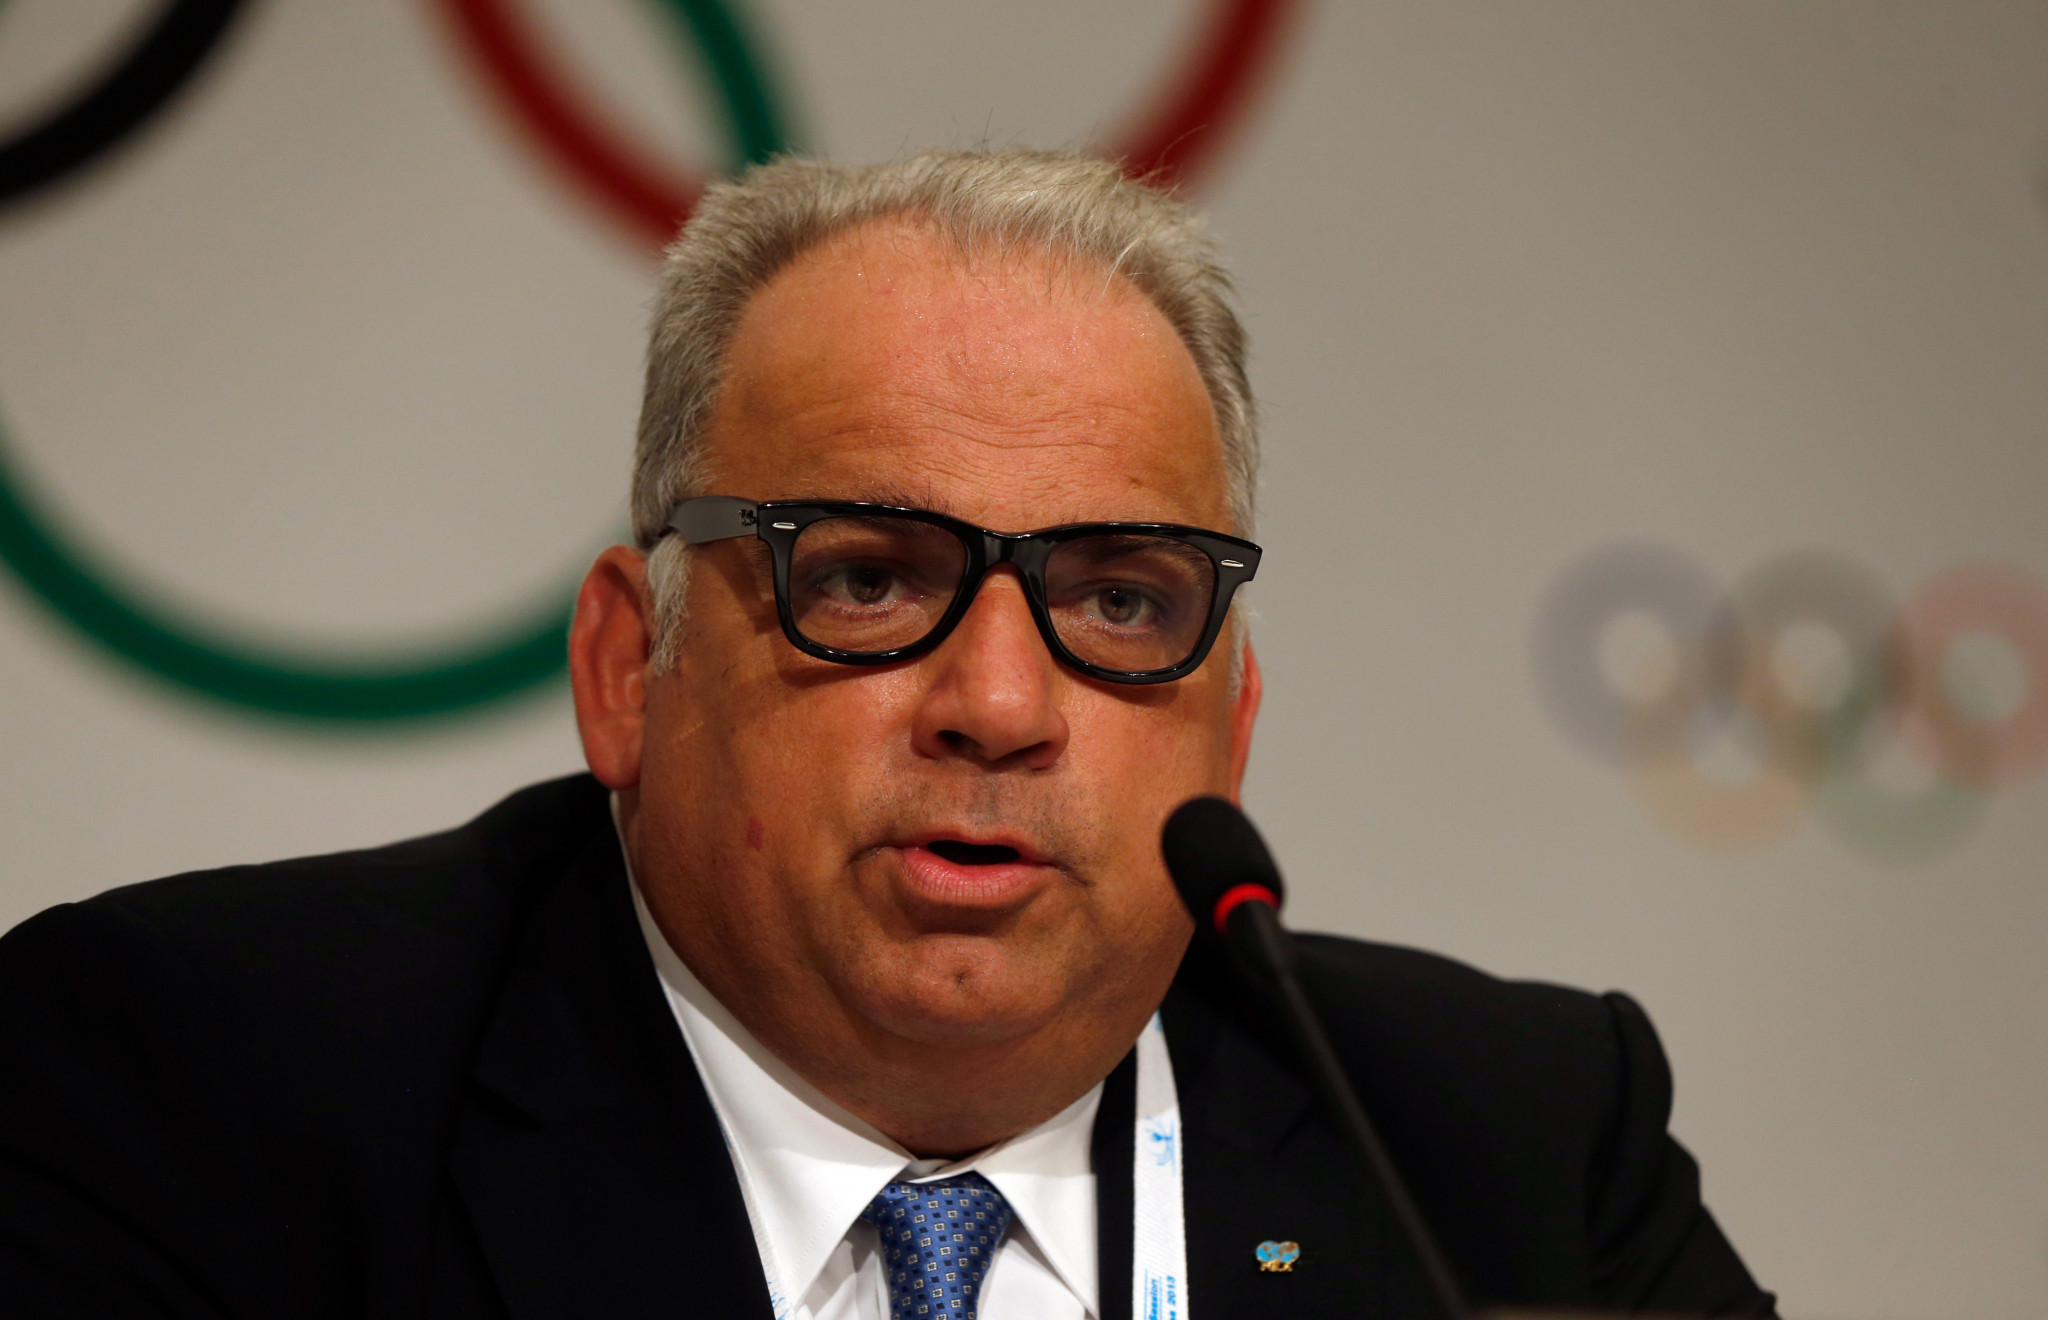 Exclusive: IOC Executive Board member Lalovic backs investigation into Scott bullying claims but questions timing of allegations